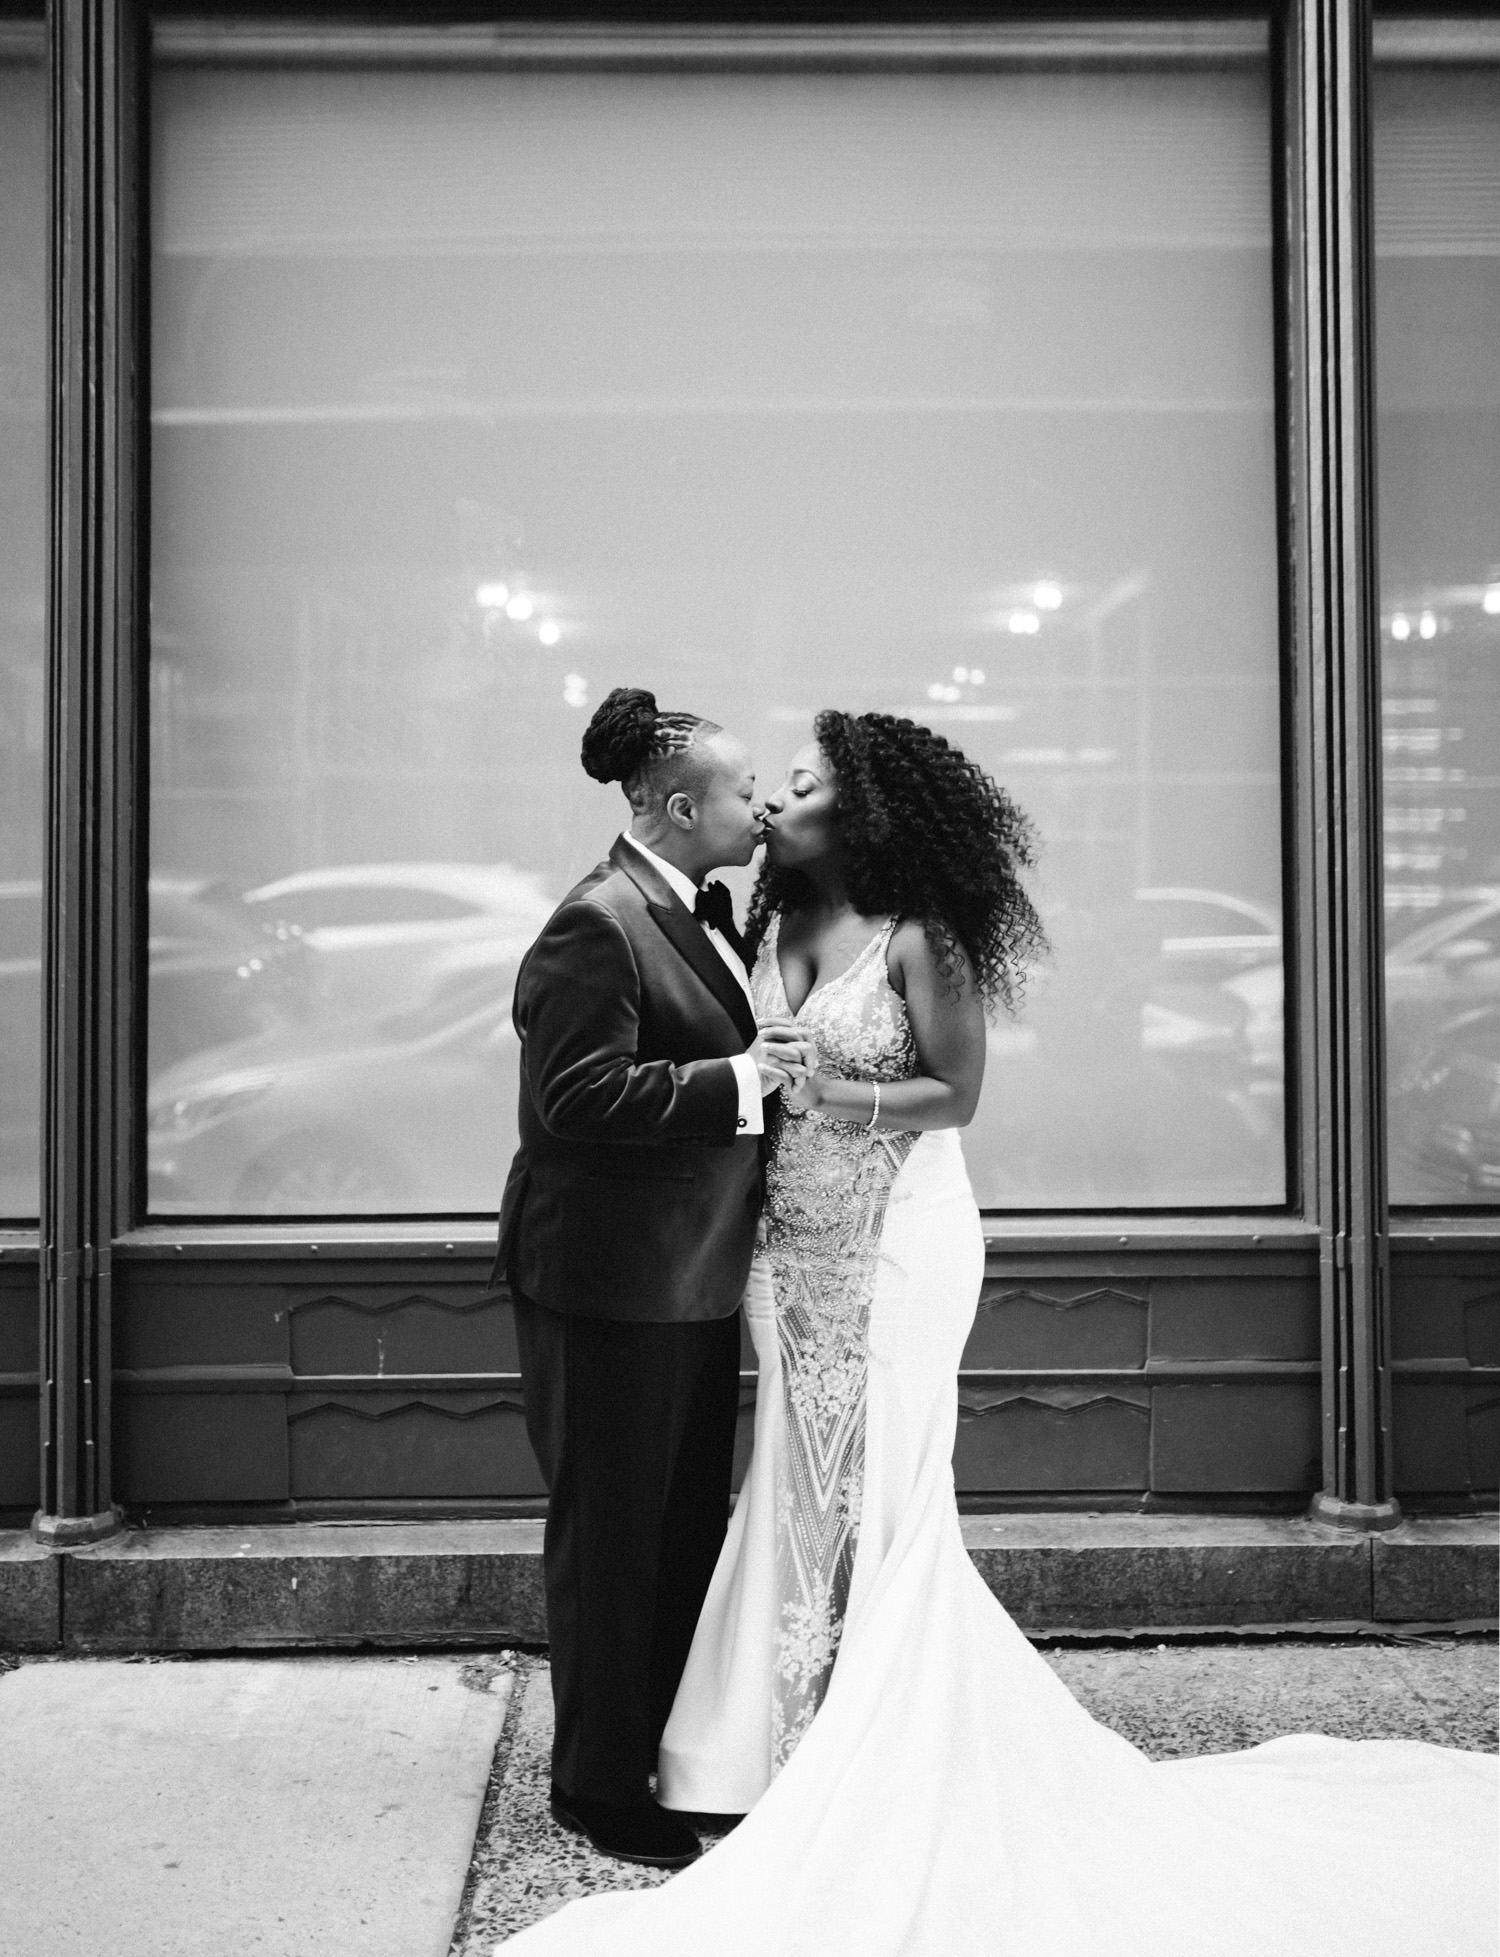 A black same sex wedding couple kisses on the streets of New York City in winter before their Brooklyn Winery wedding ceremony